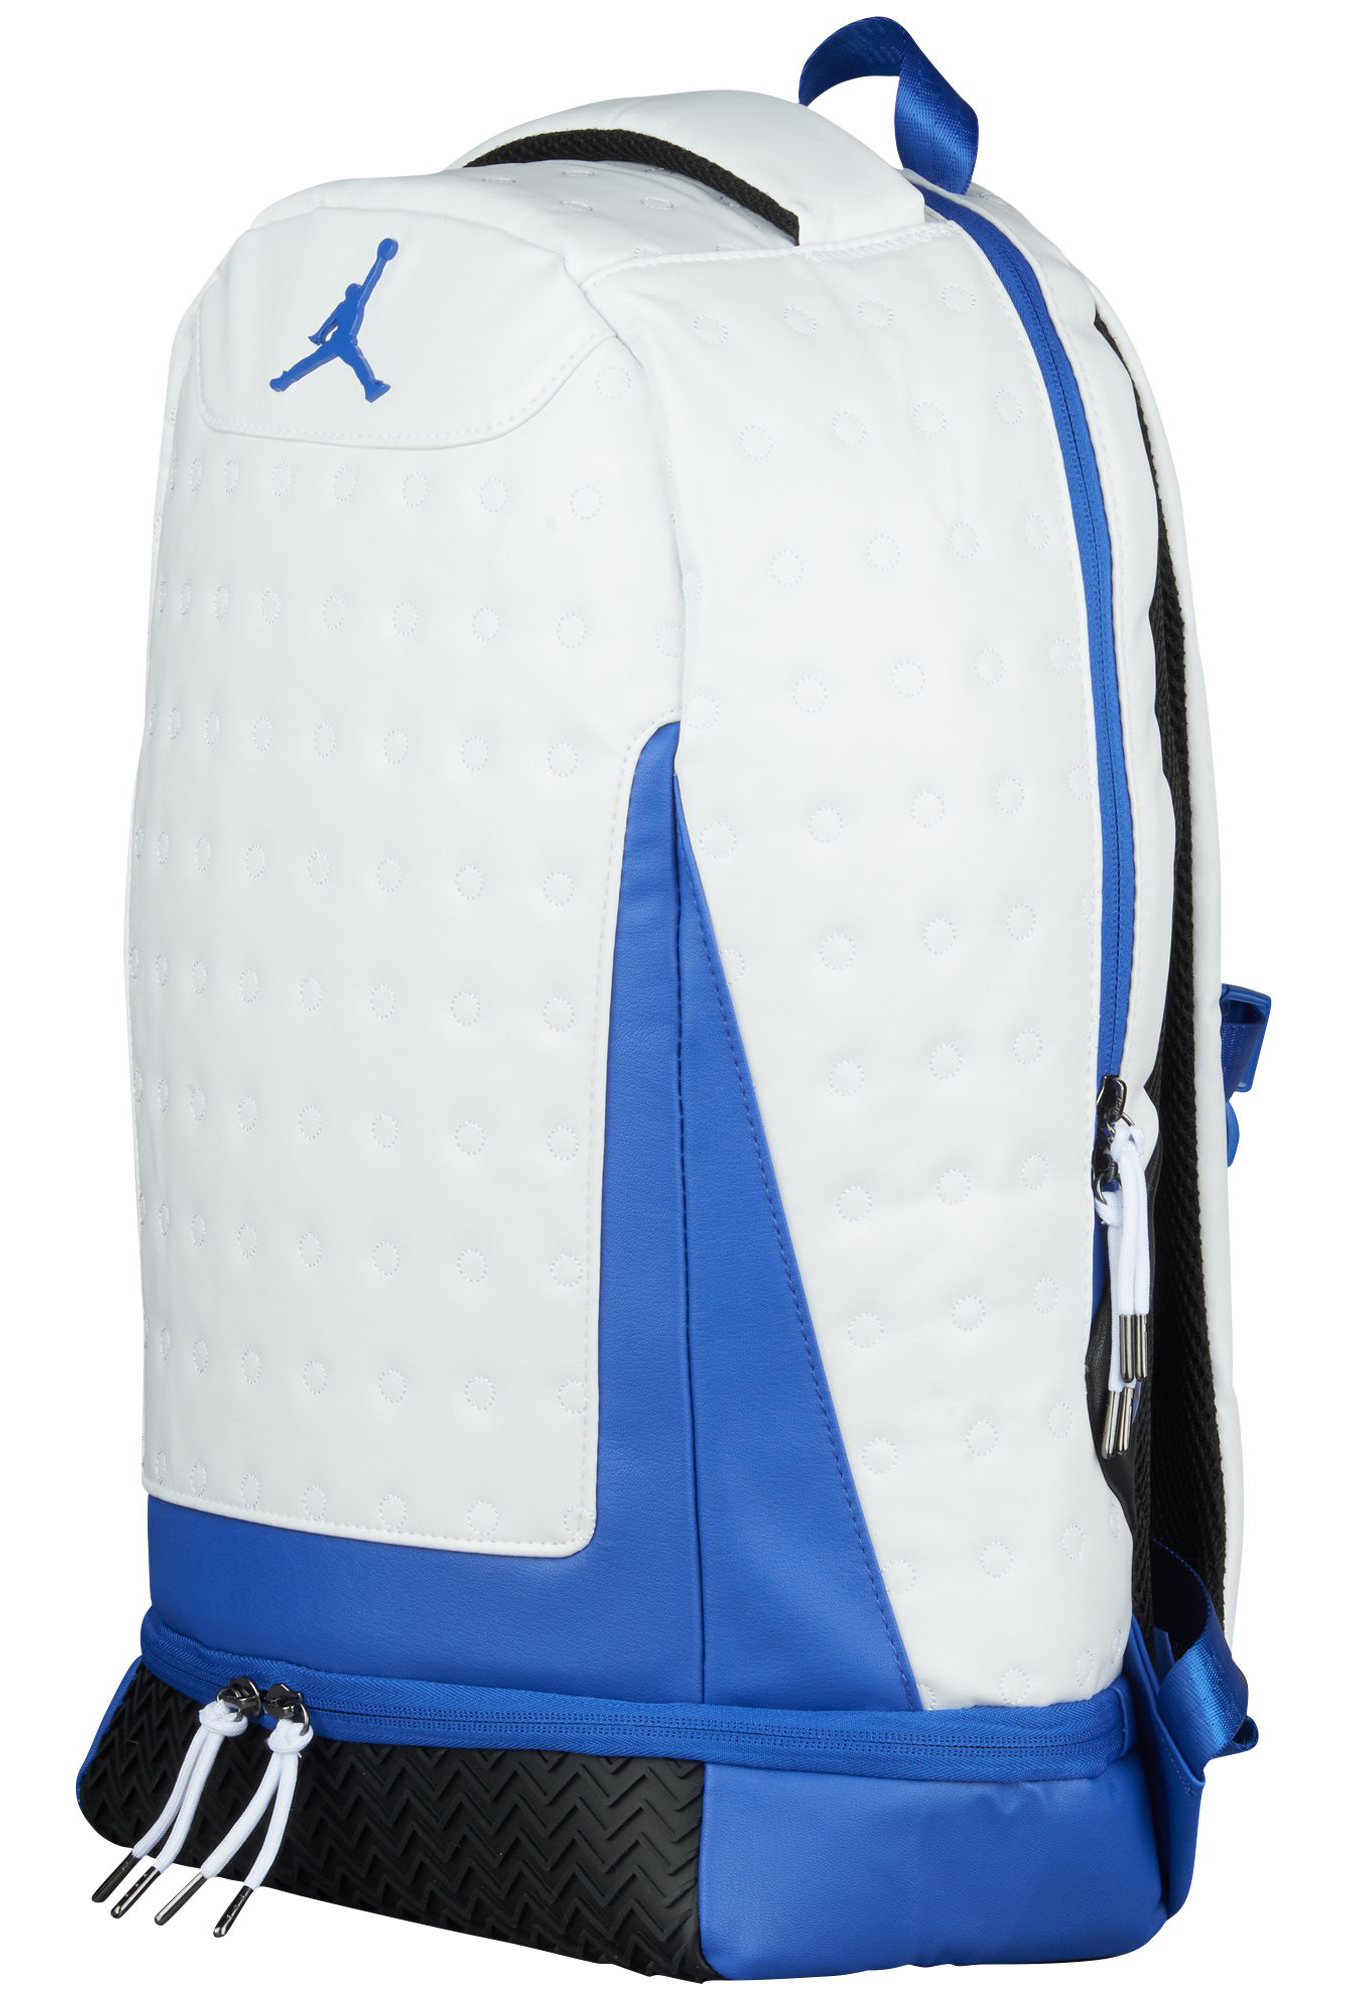 jordan-13-hyper-royal-backpack-1